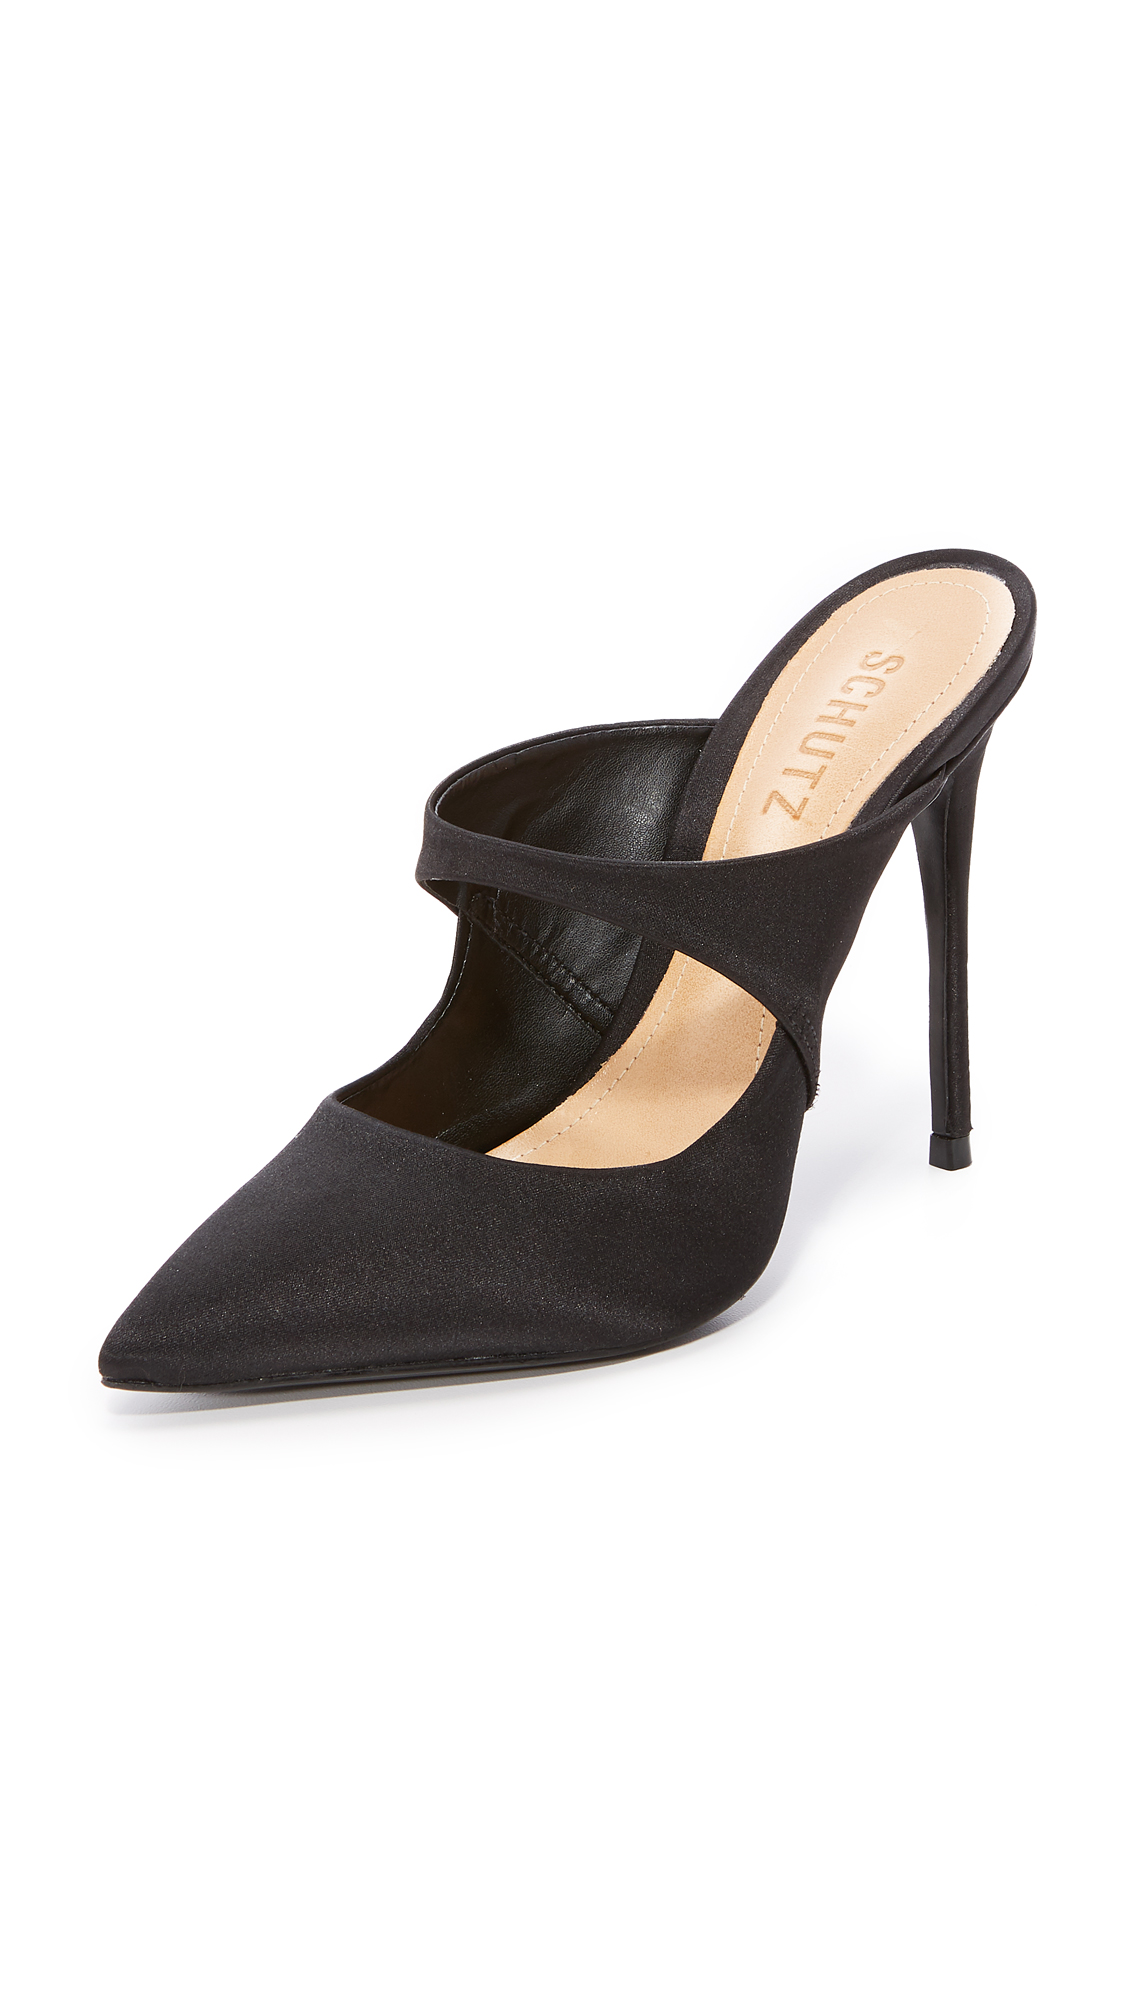 Schutz Nicolly Pointed Toe Heeled Mules - Black